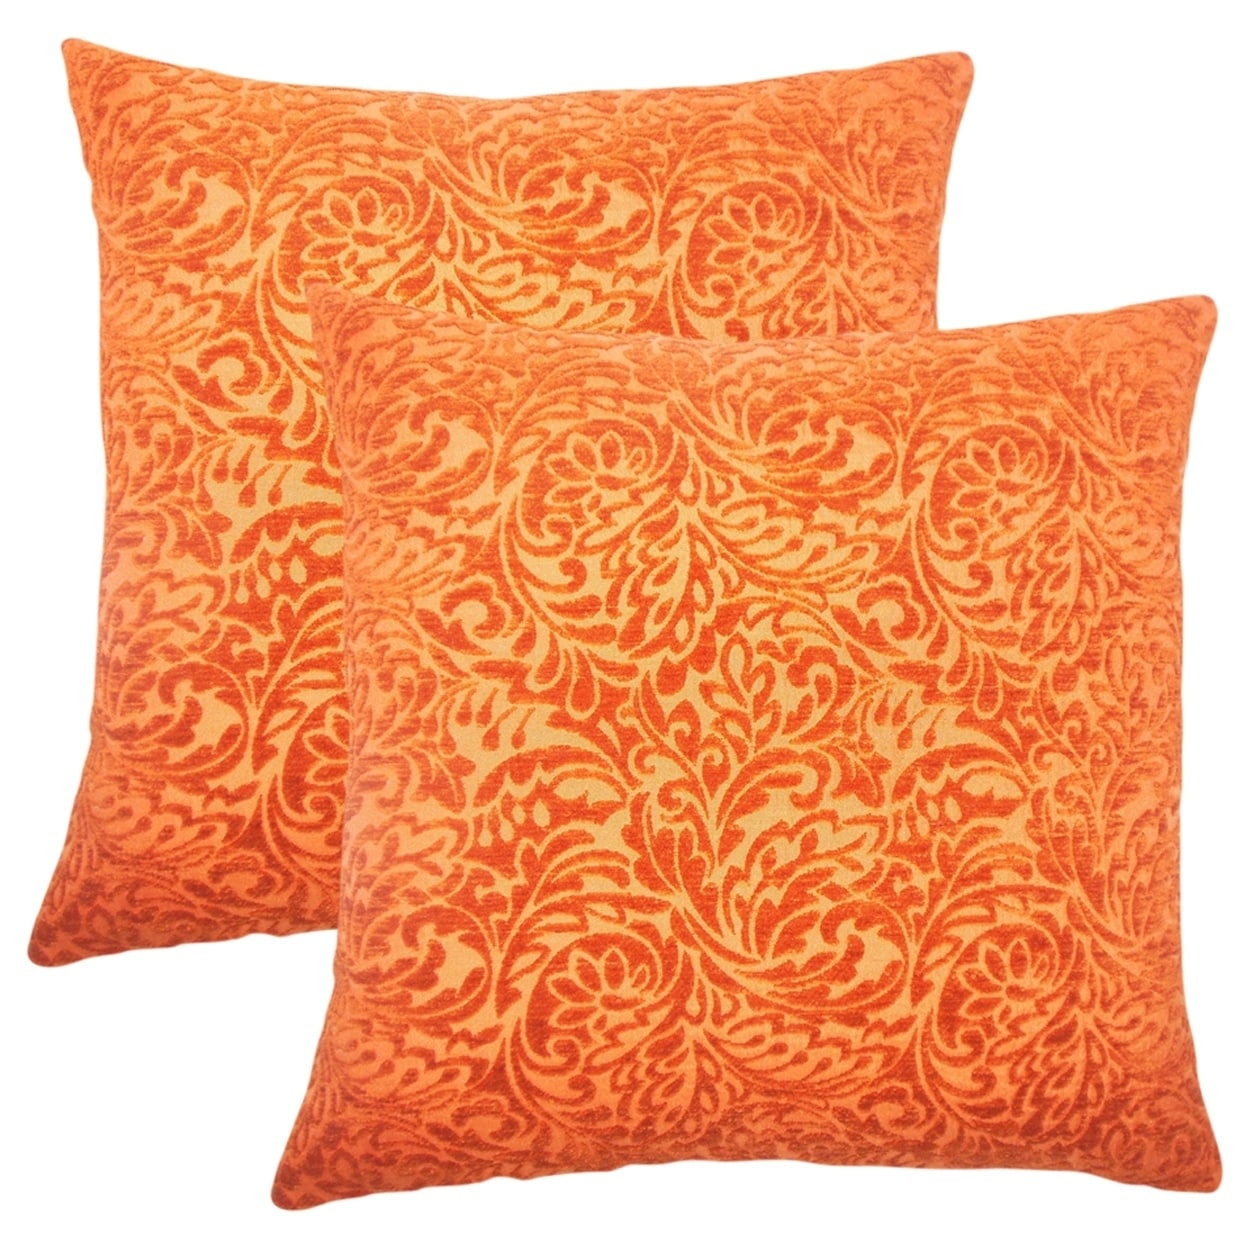 Set of 2  Taline Damask Throw Pillows in Tangerine